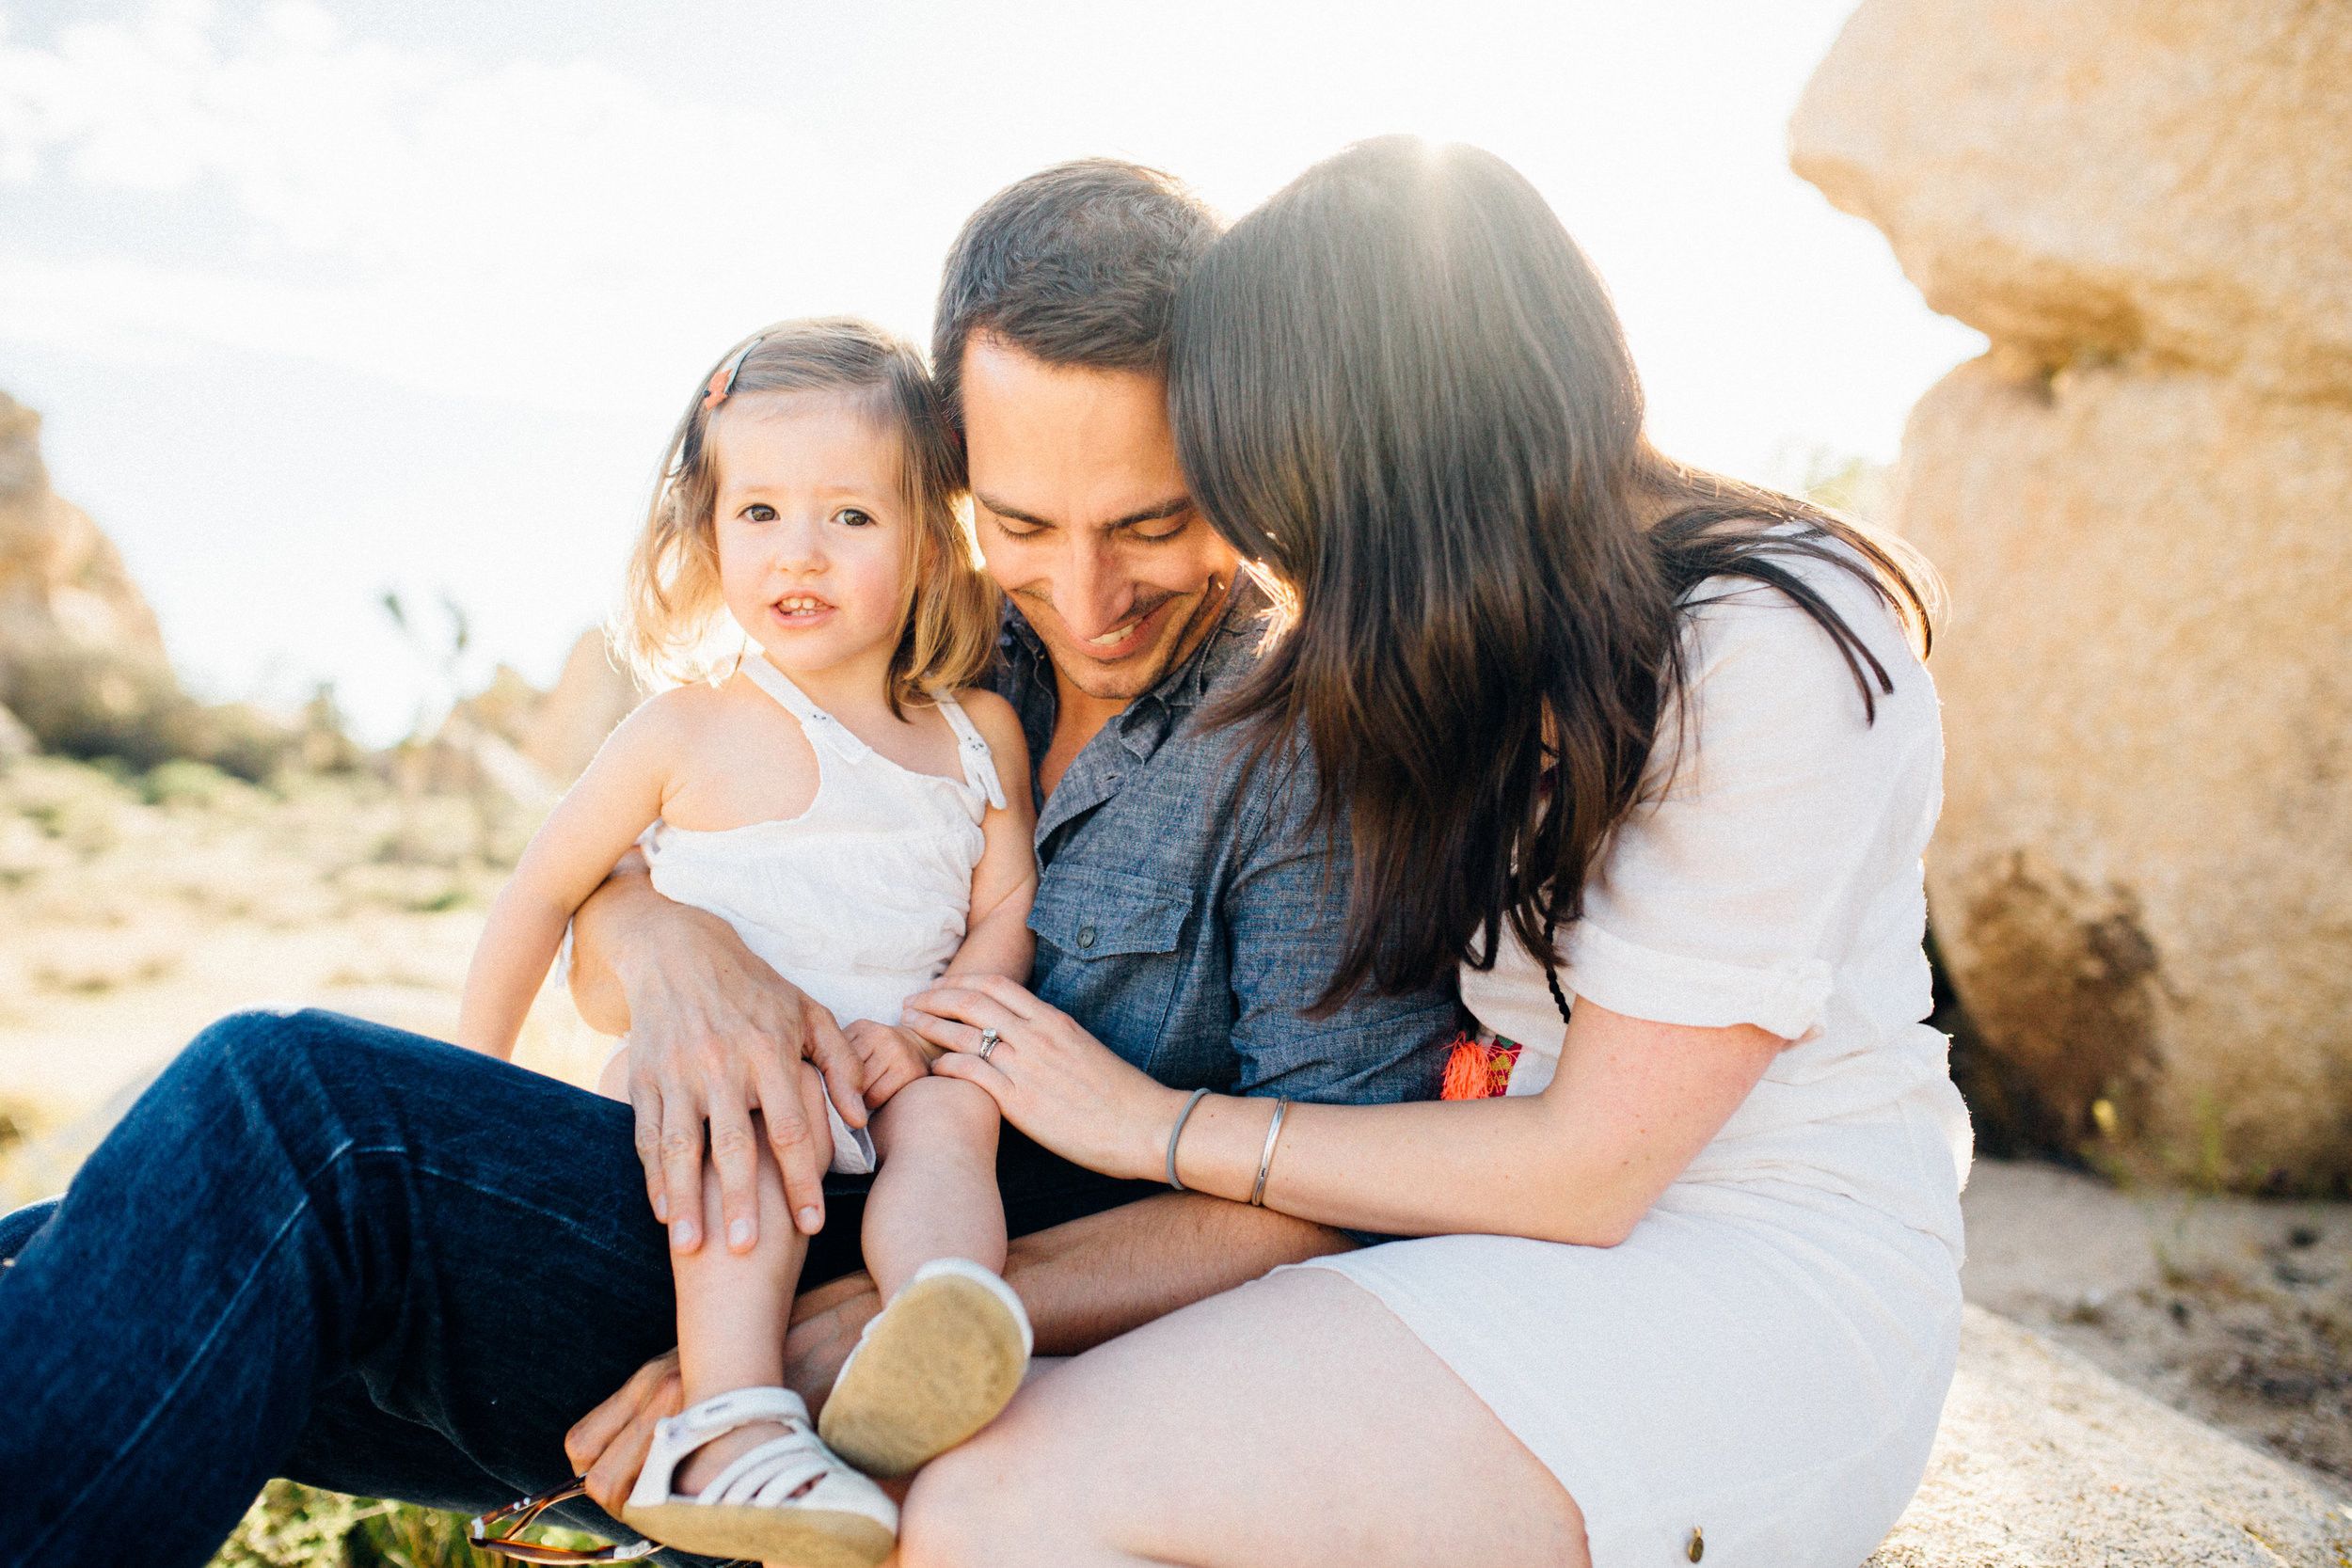 joshua-tree_california_family-session_nicki-sebastian-photography-77.jpg